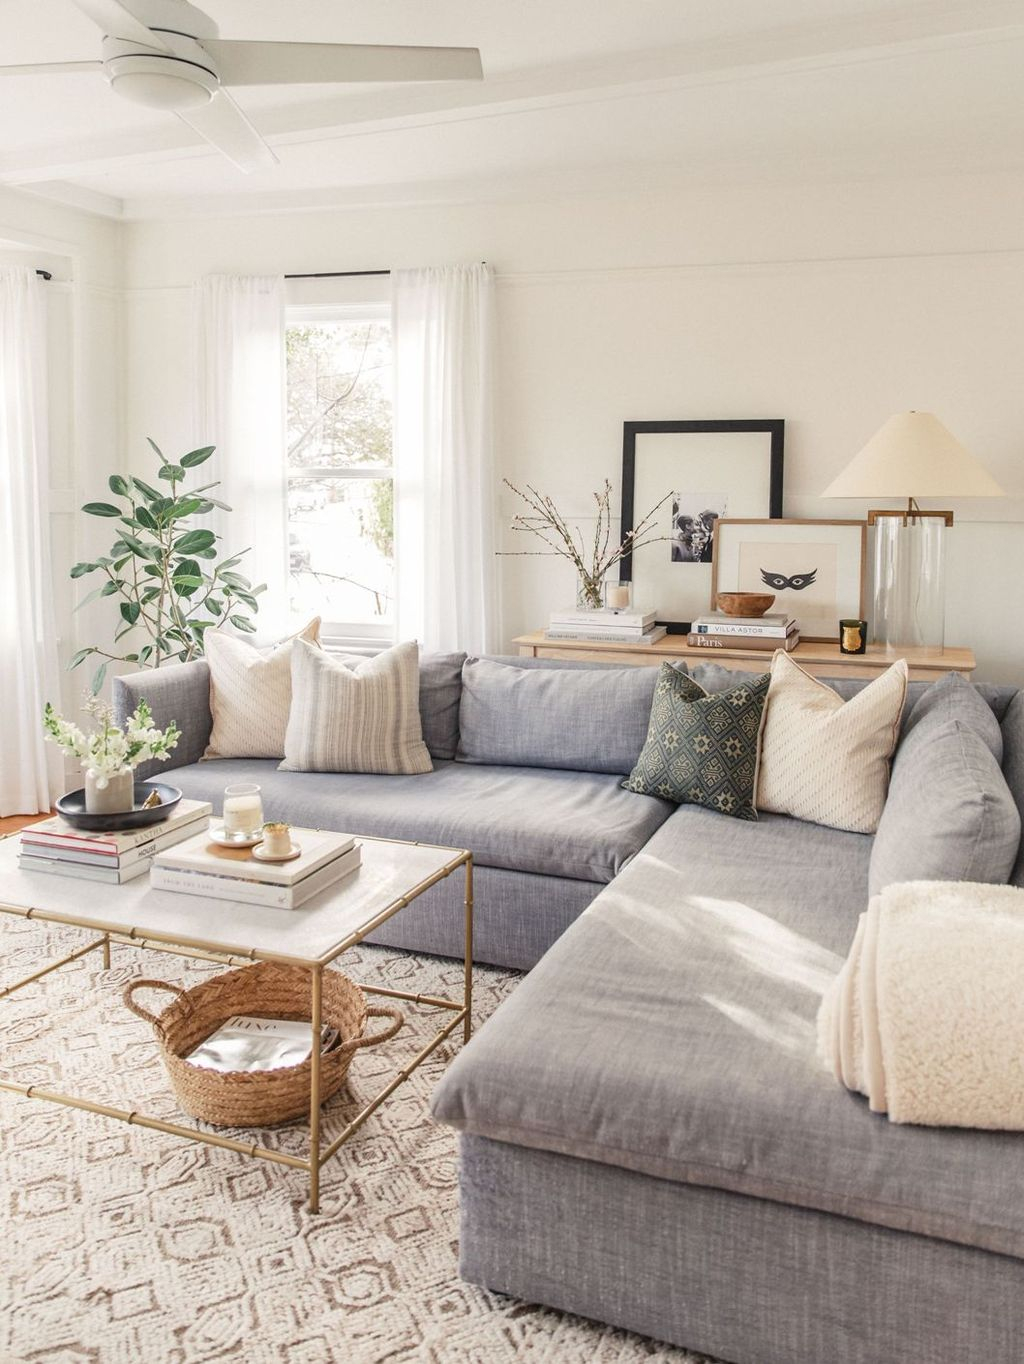 Magnificient Living Room Decor Ideas For Winter To Try 19